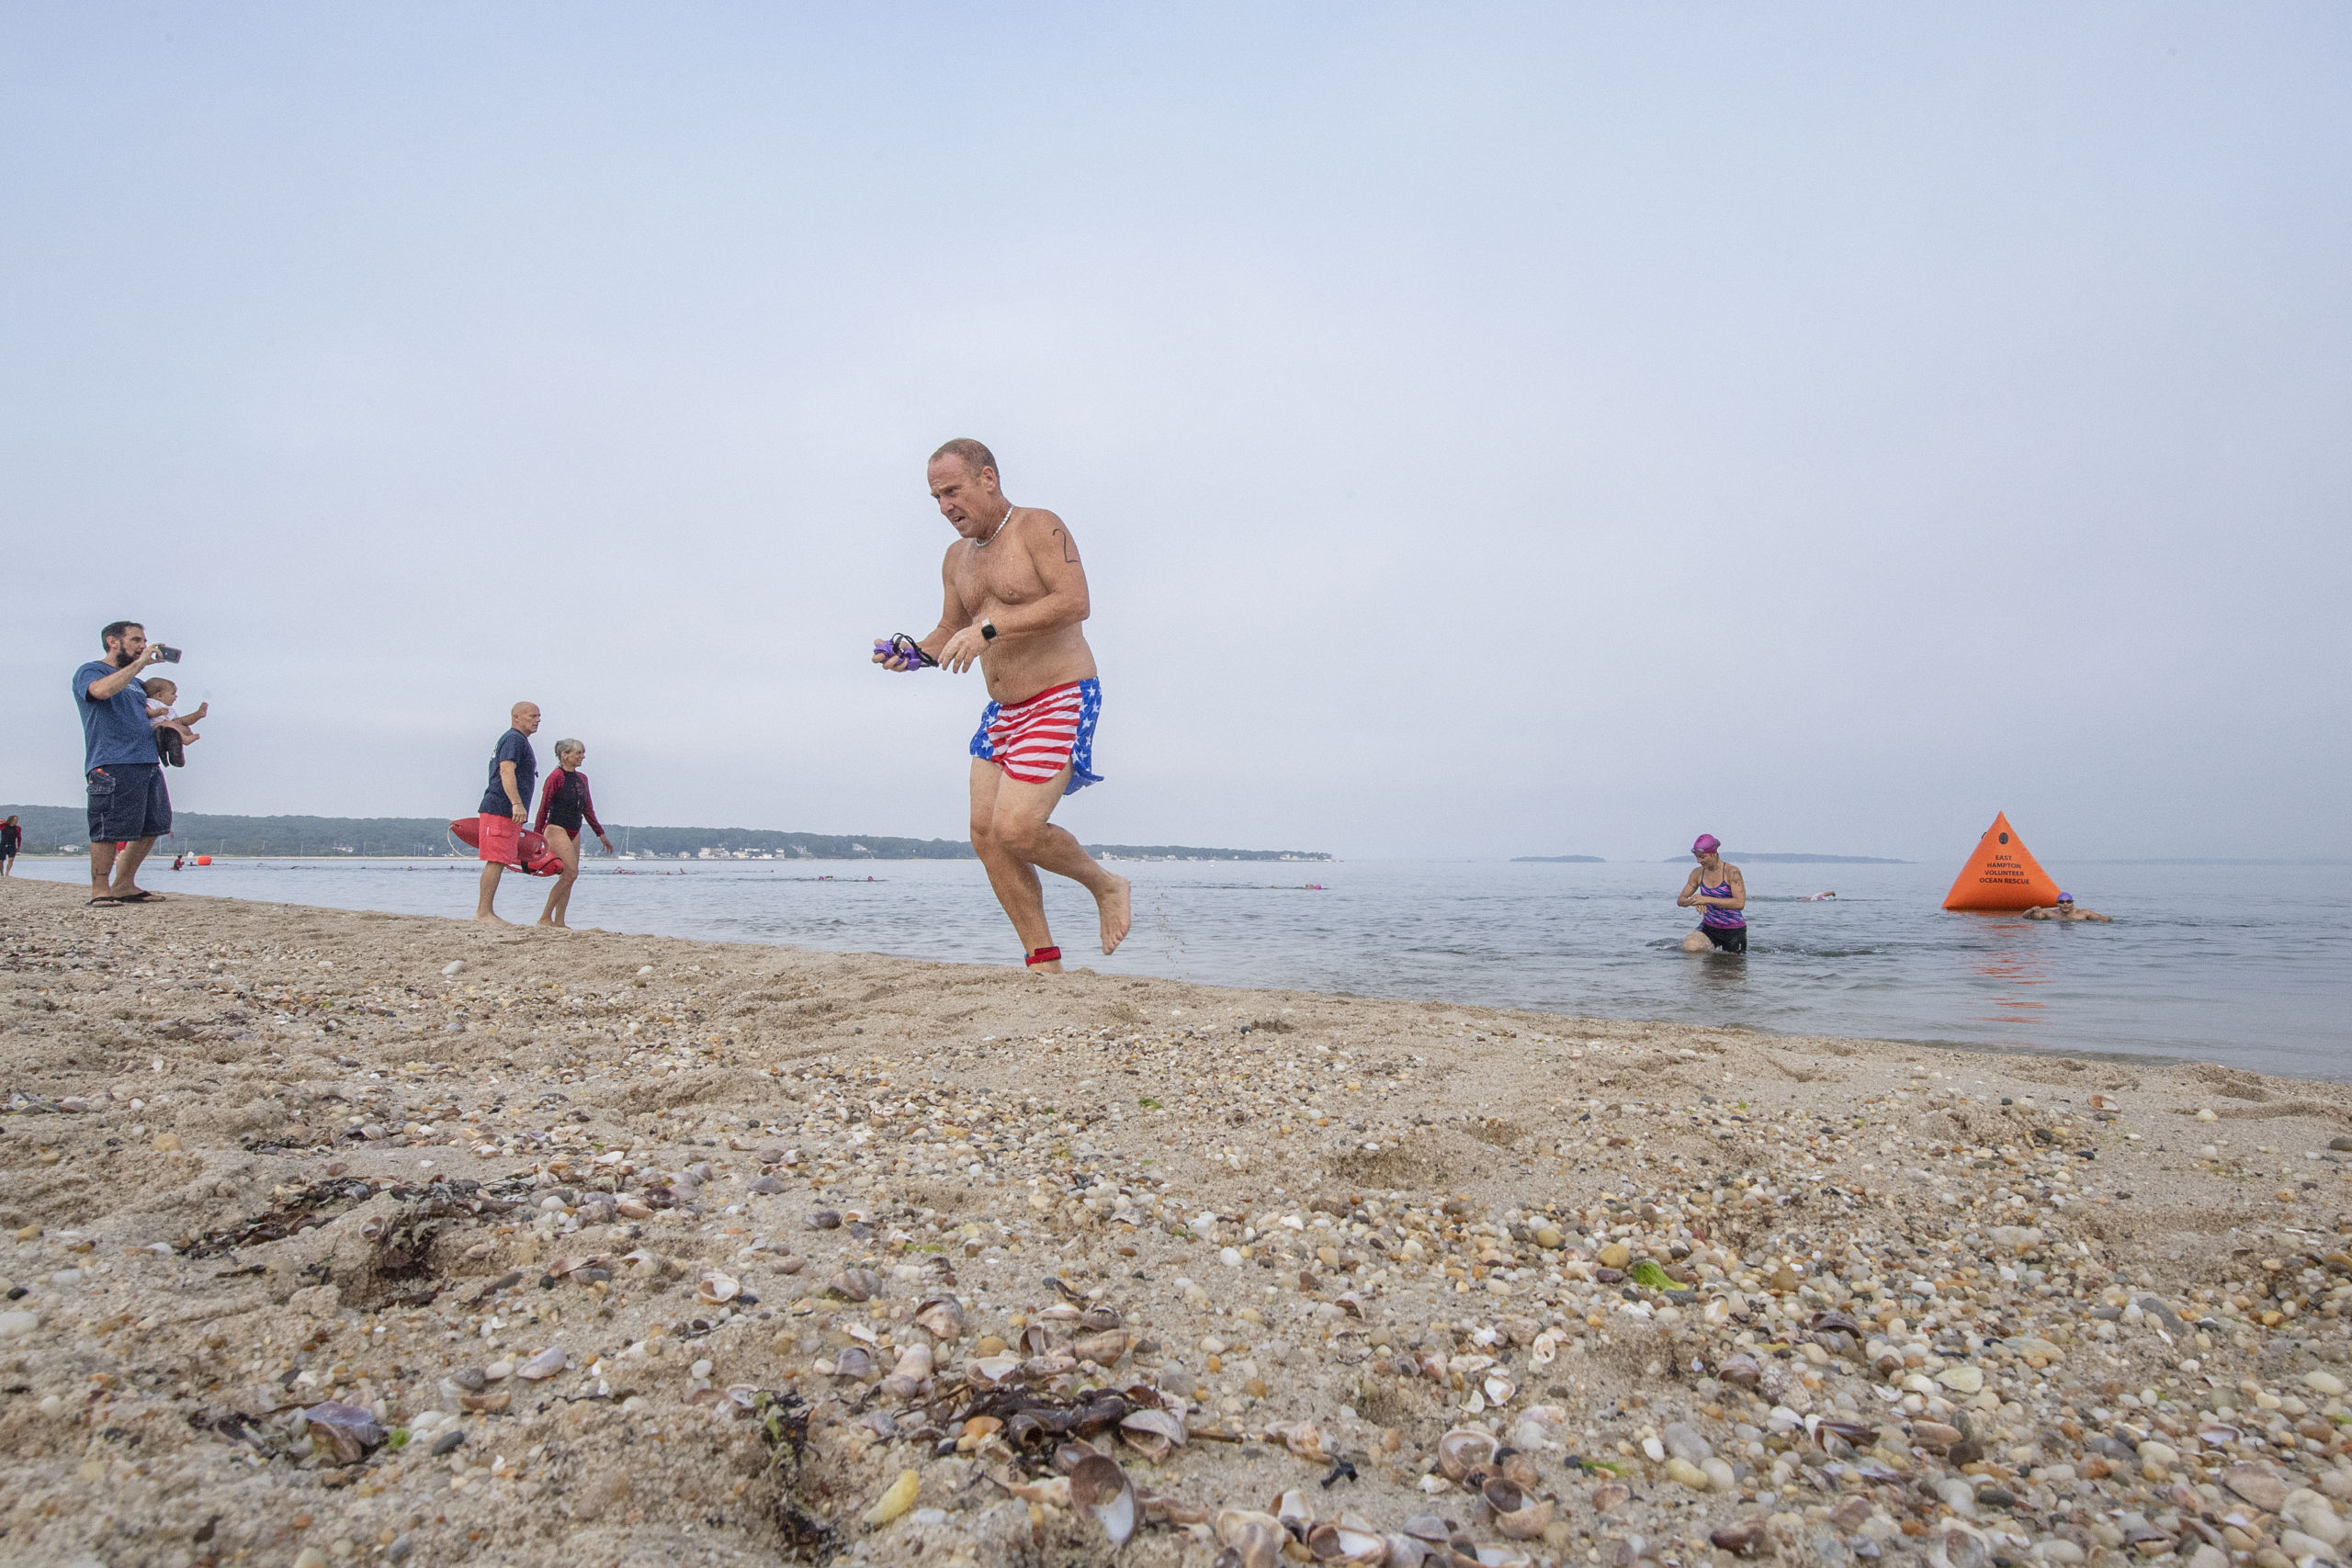 Competitors exit the water during the first leg of the Hamptons Young at Heart Triathlon.